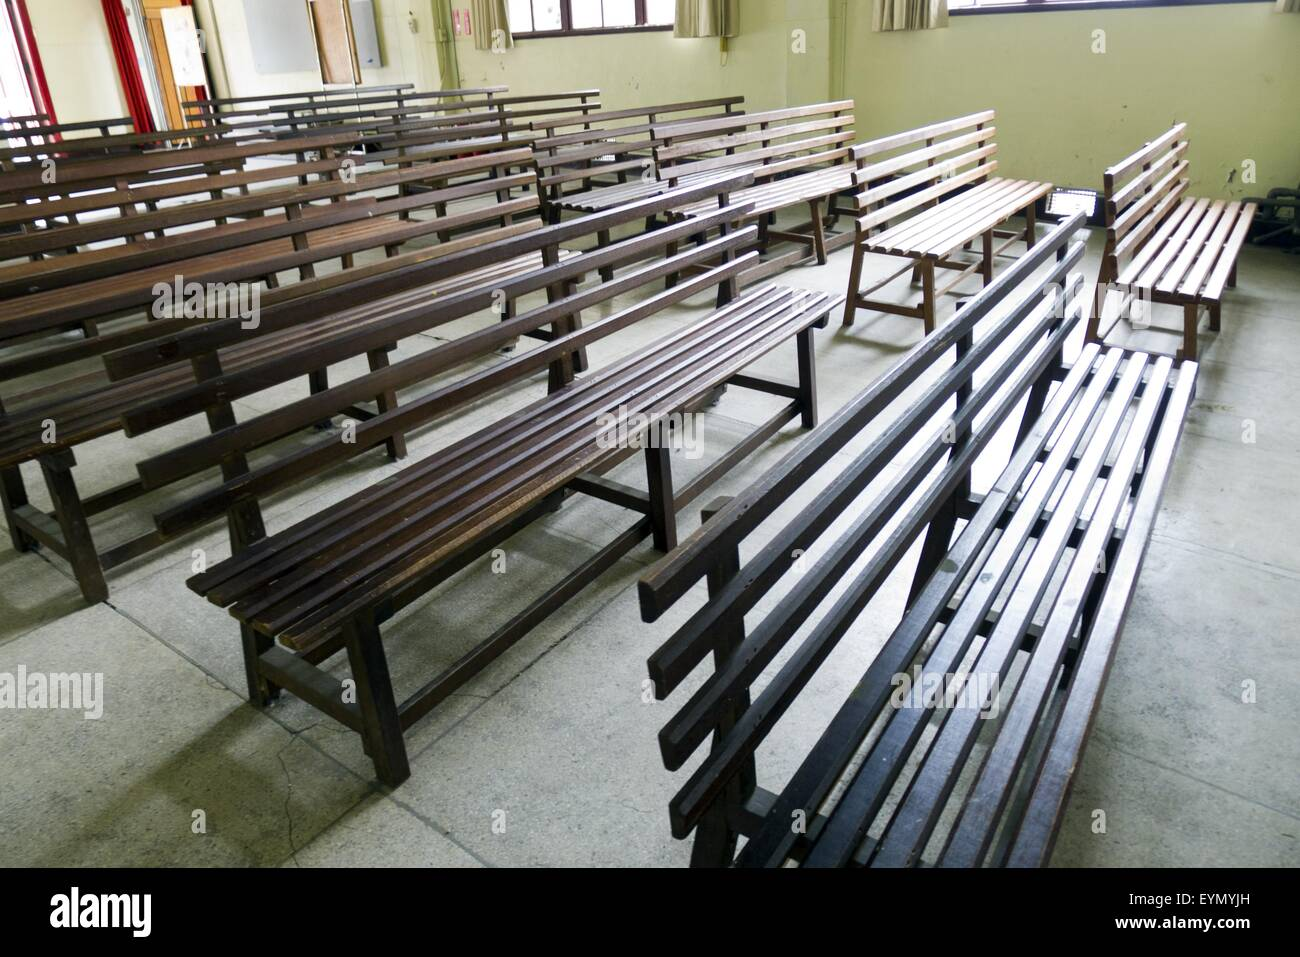 Vintage Old Wooden Benches Inside Church Wide Angle View Stock